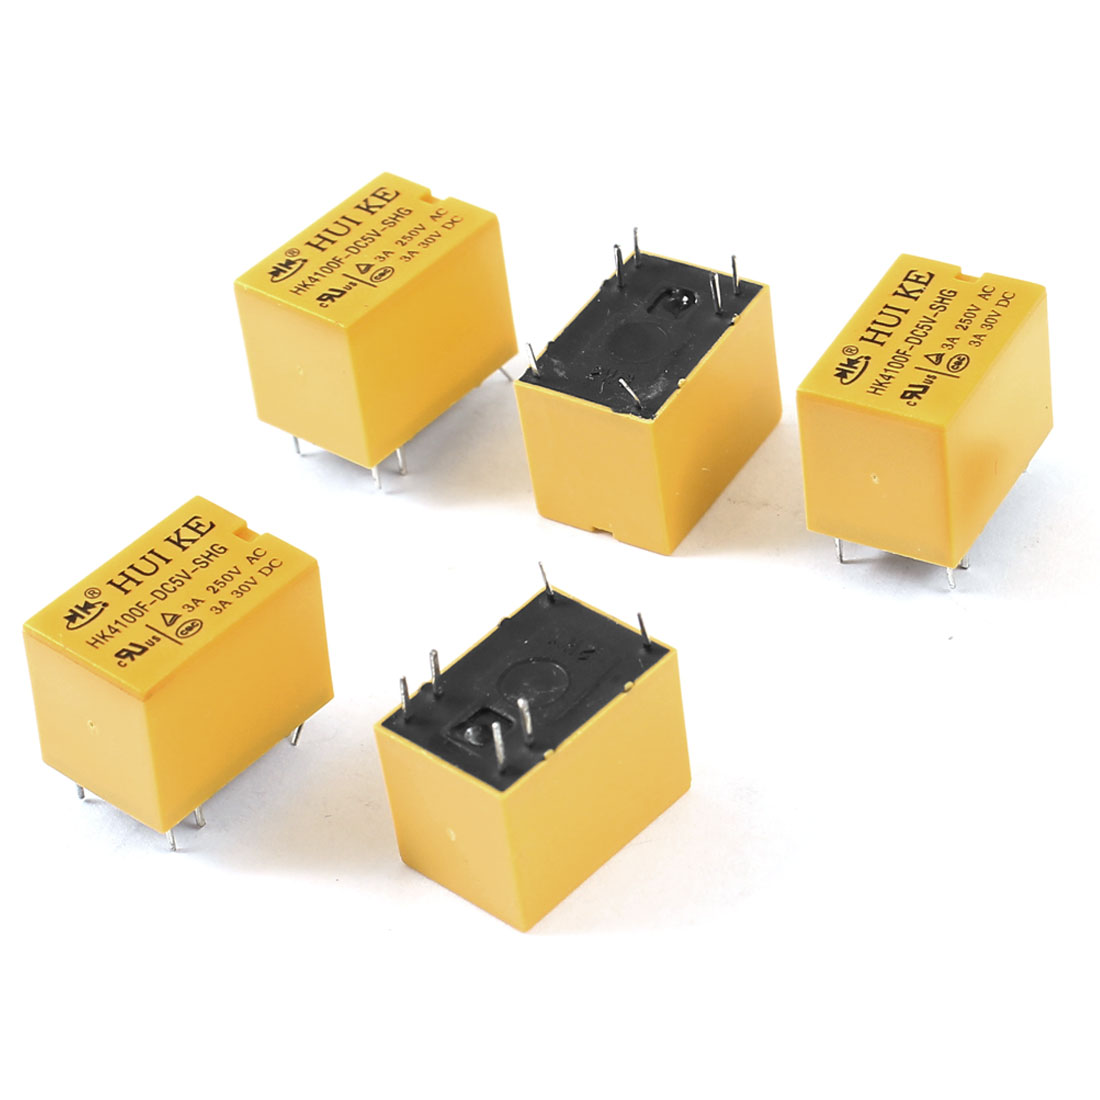 5 Pieces DC 5V Coil SPDT 6-Pin PCB Type Mini Power Relays Yellow